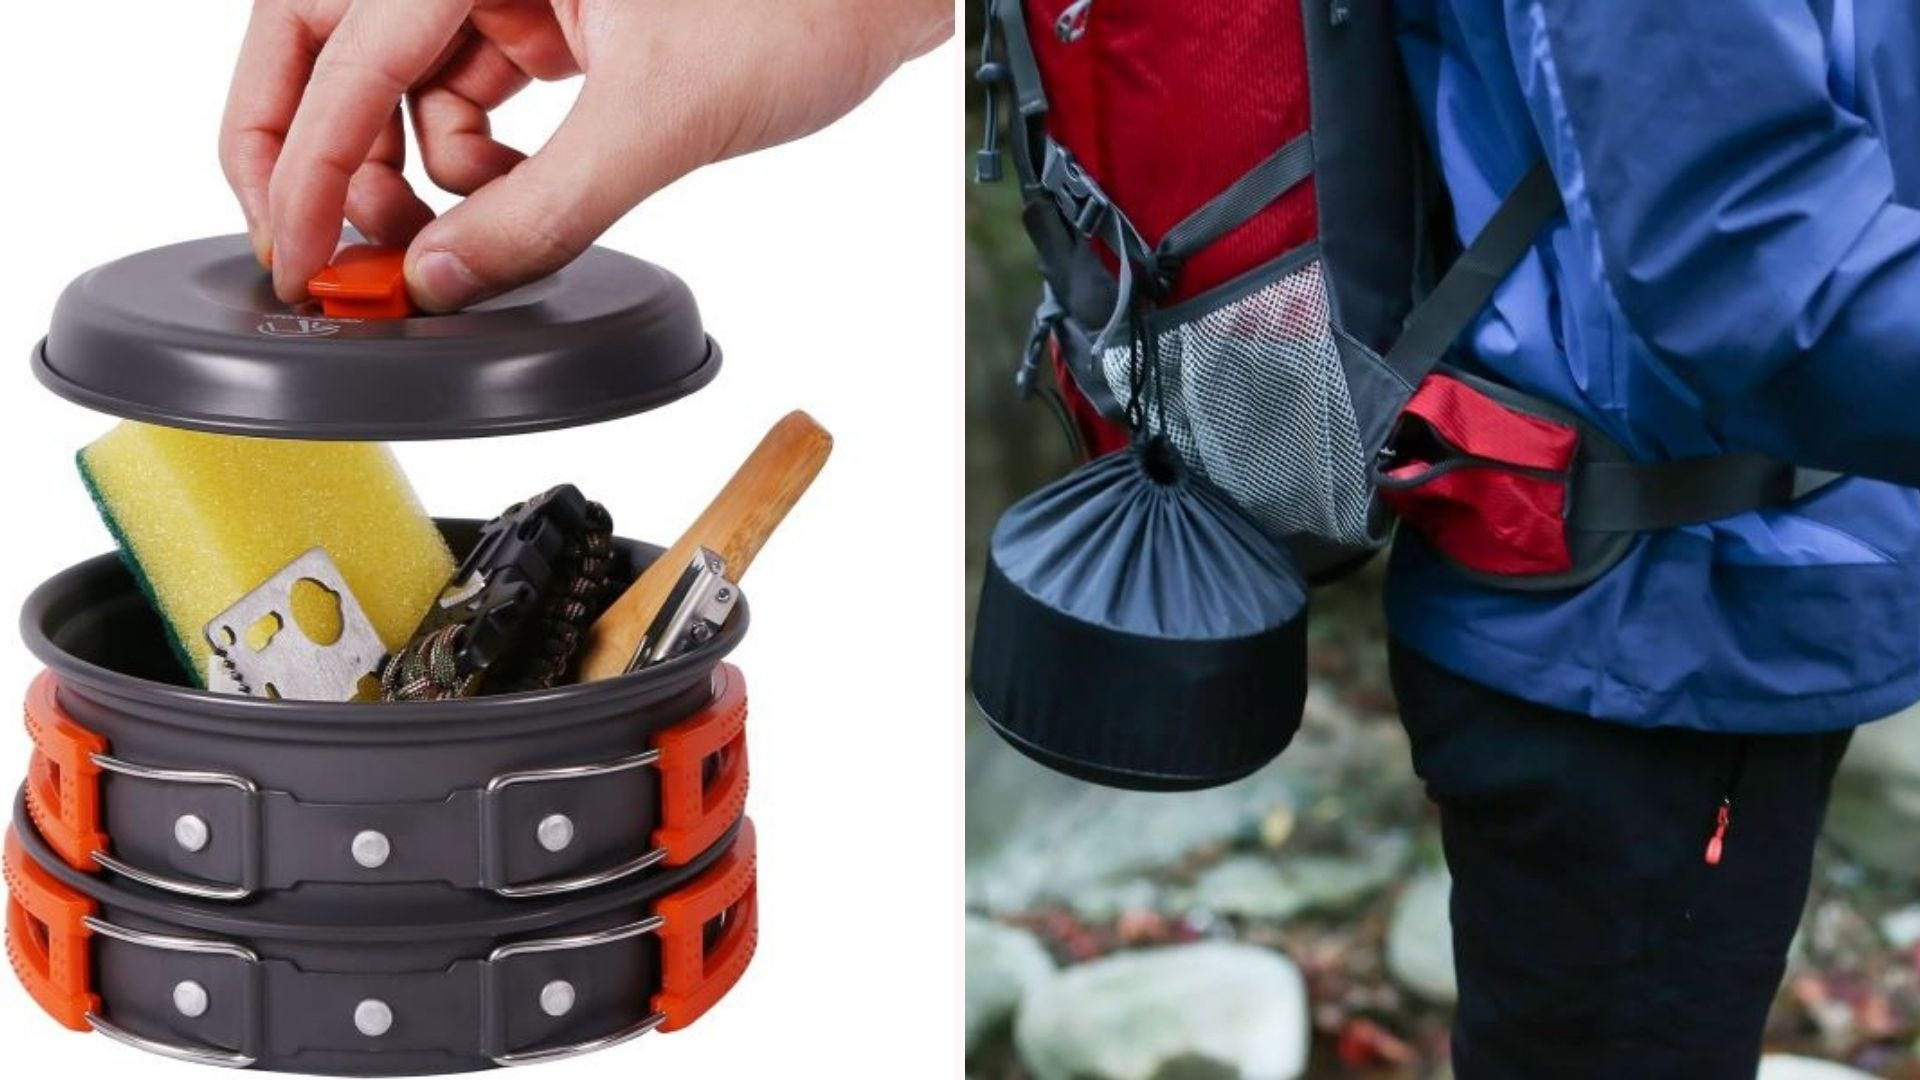 The Cookware Mess Kit assembled in the pot, and hanging on someone's backpack.